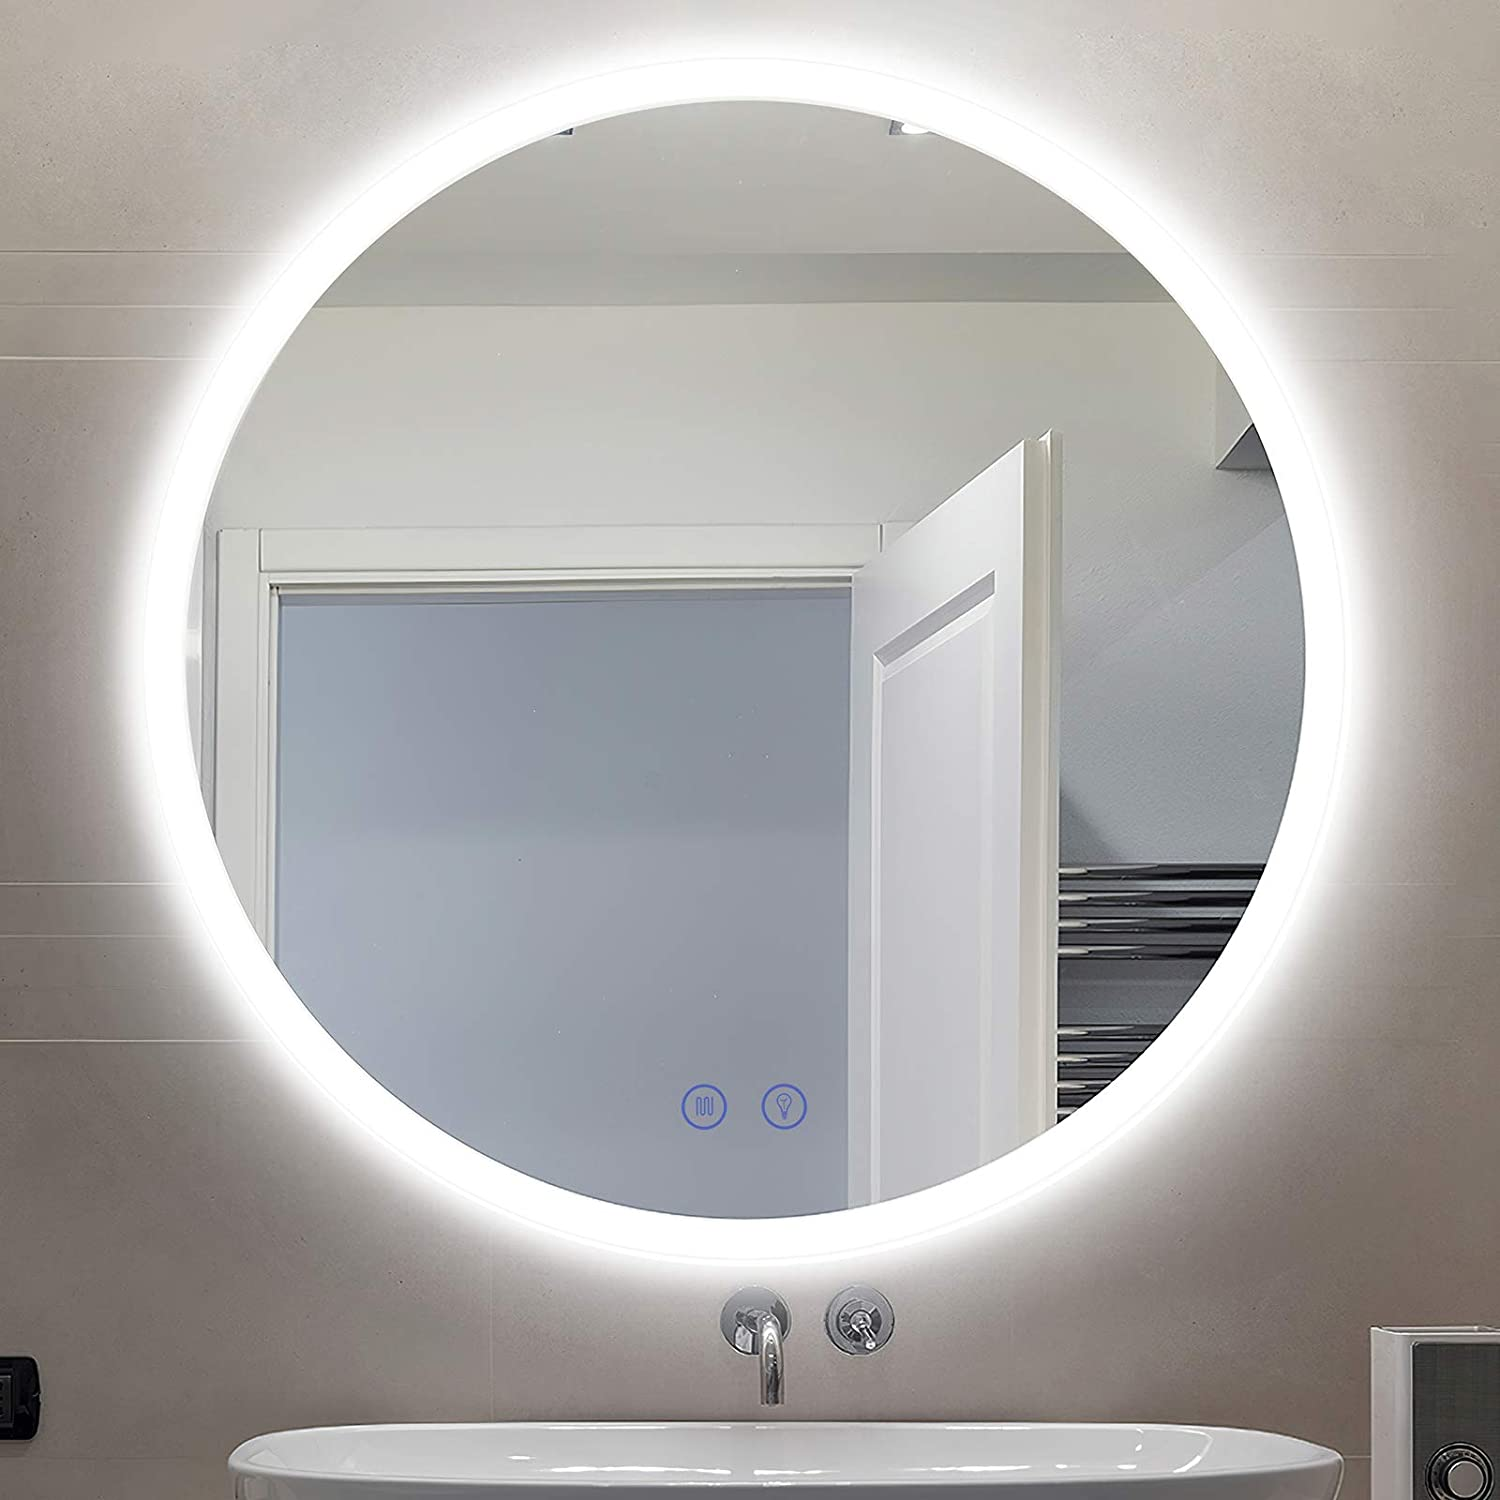 Citymoda Led Lighted Bathroom Mirror Large Round 32 In Wall Mount Vanity Mirror Frameless Led Backlit Mirror Lighted Mirror With Touch Dimmer Switch Anti Fog 3 Color Tones